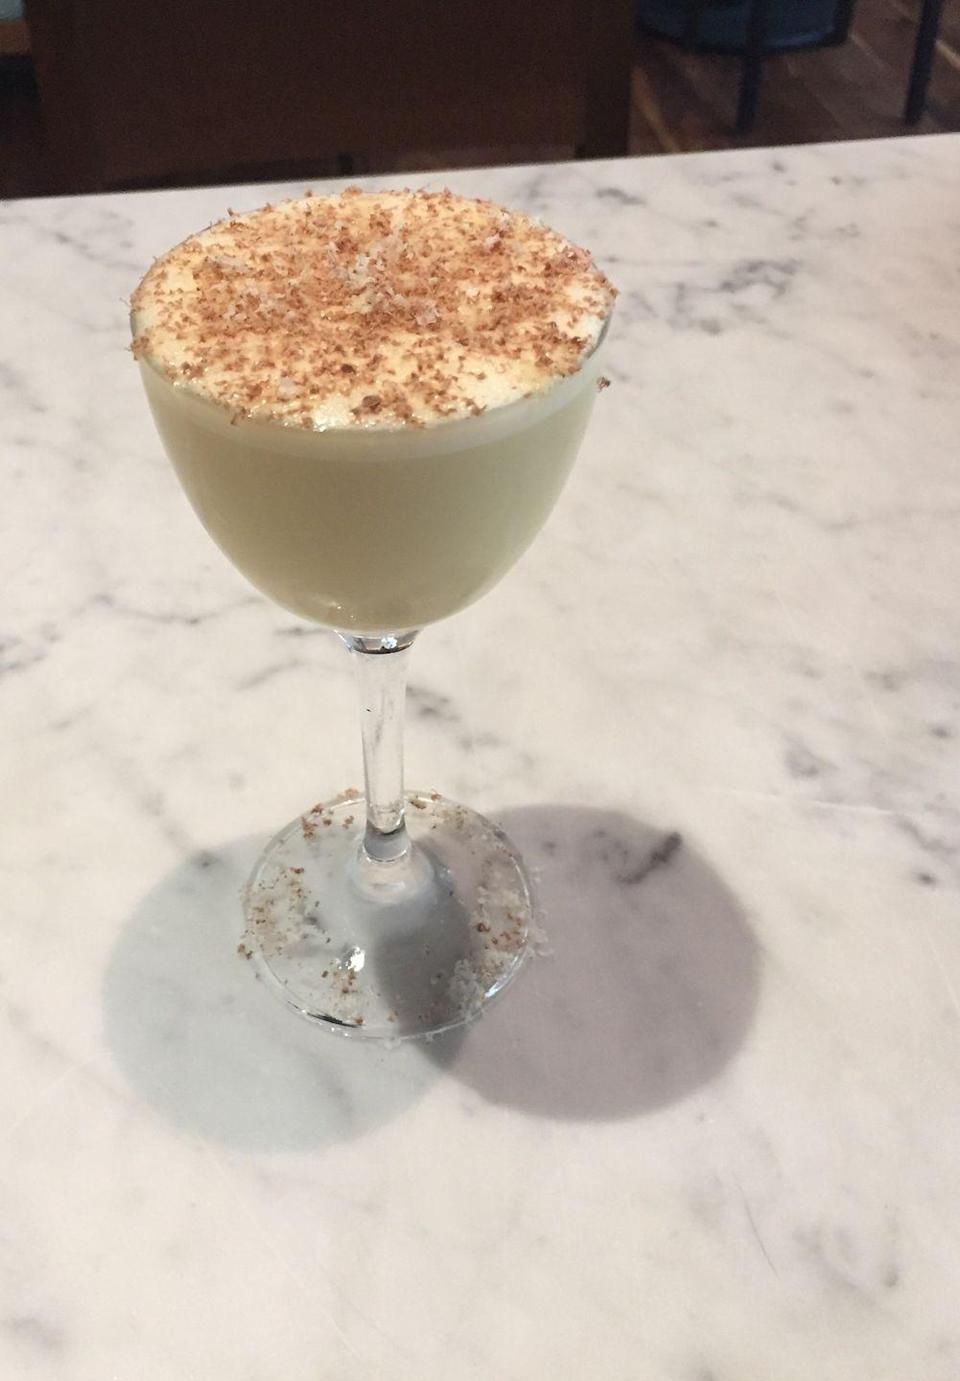 """<p><strong>Ingredients<br></strong>1.25 oz Old Forester bourbon <br>.75 oz Art in the Age (ginger) Snap liqueur<br>.75 oz honey<br>.75 oz cream<br>1 egg yolk <br>Grated chocolate, pecan, and nutmeg for garnish </p><p><strong>Instructions</strong><br>Combine all ingredients except garnish in shaker with 2 to 3 ice cubes. Discard ice cubes and dry shake. Strain into coupe glass. To garnish, grate chocolate, pecan and nutmeg. </p><p><em>Courtesy of <a href=""""https://italiennenyc.com/"""" rel=""""nofollow noopener"""" target=""""_blank"""" data-ylk=""""slk:Italienne"""" class=""""link rapid-noclick-resp"""">Italienne</a>, New York City</em></p>"""